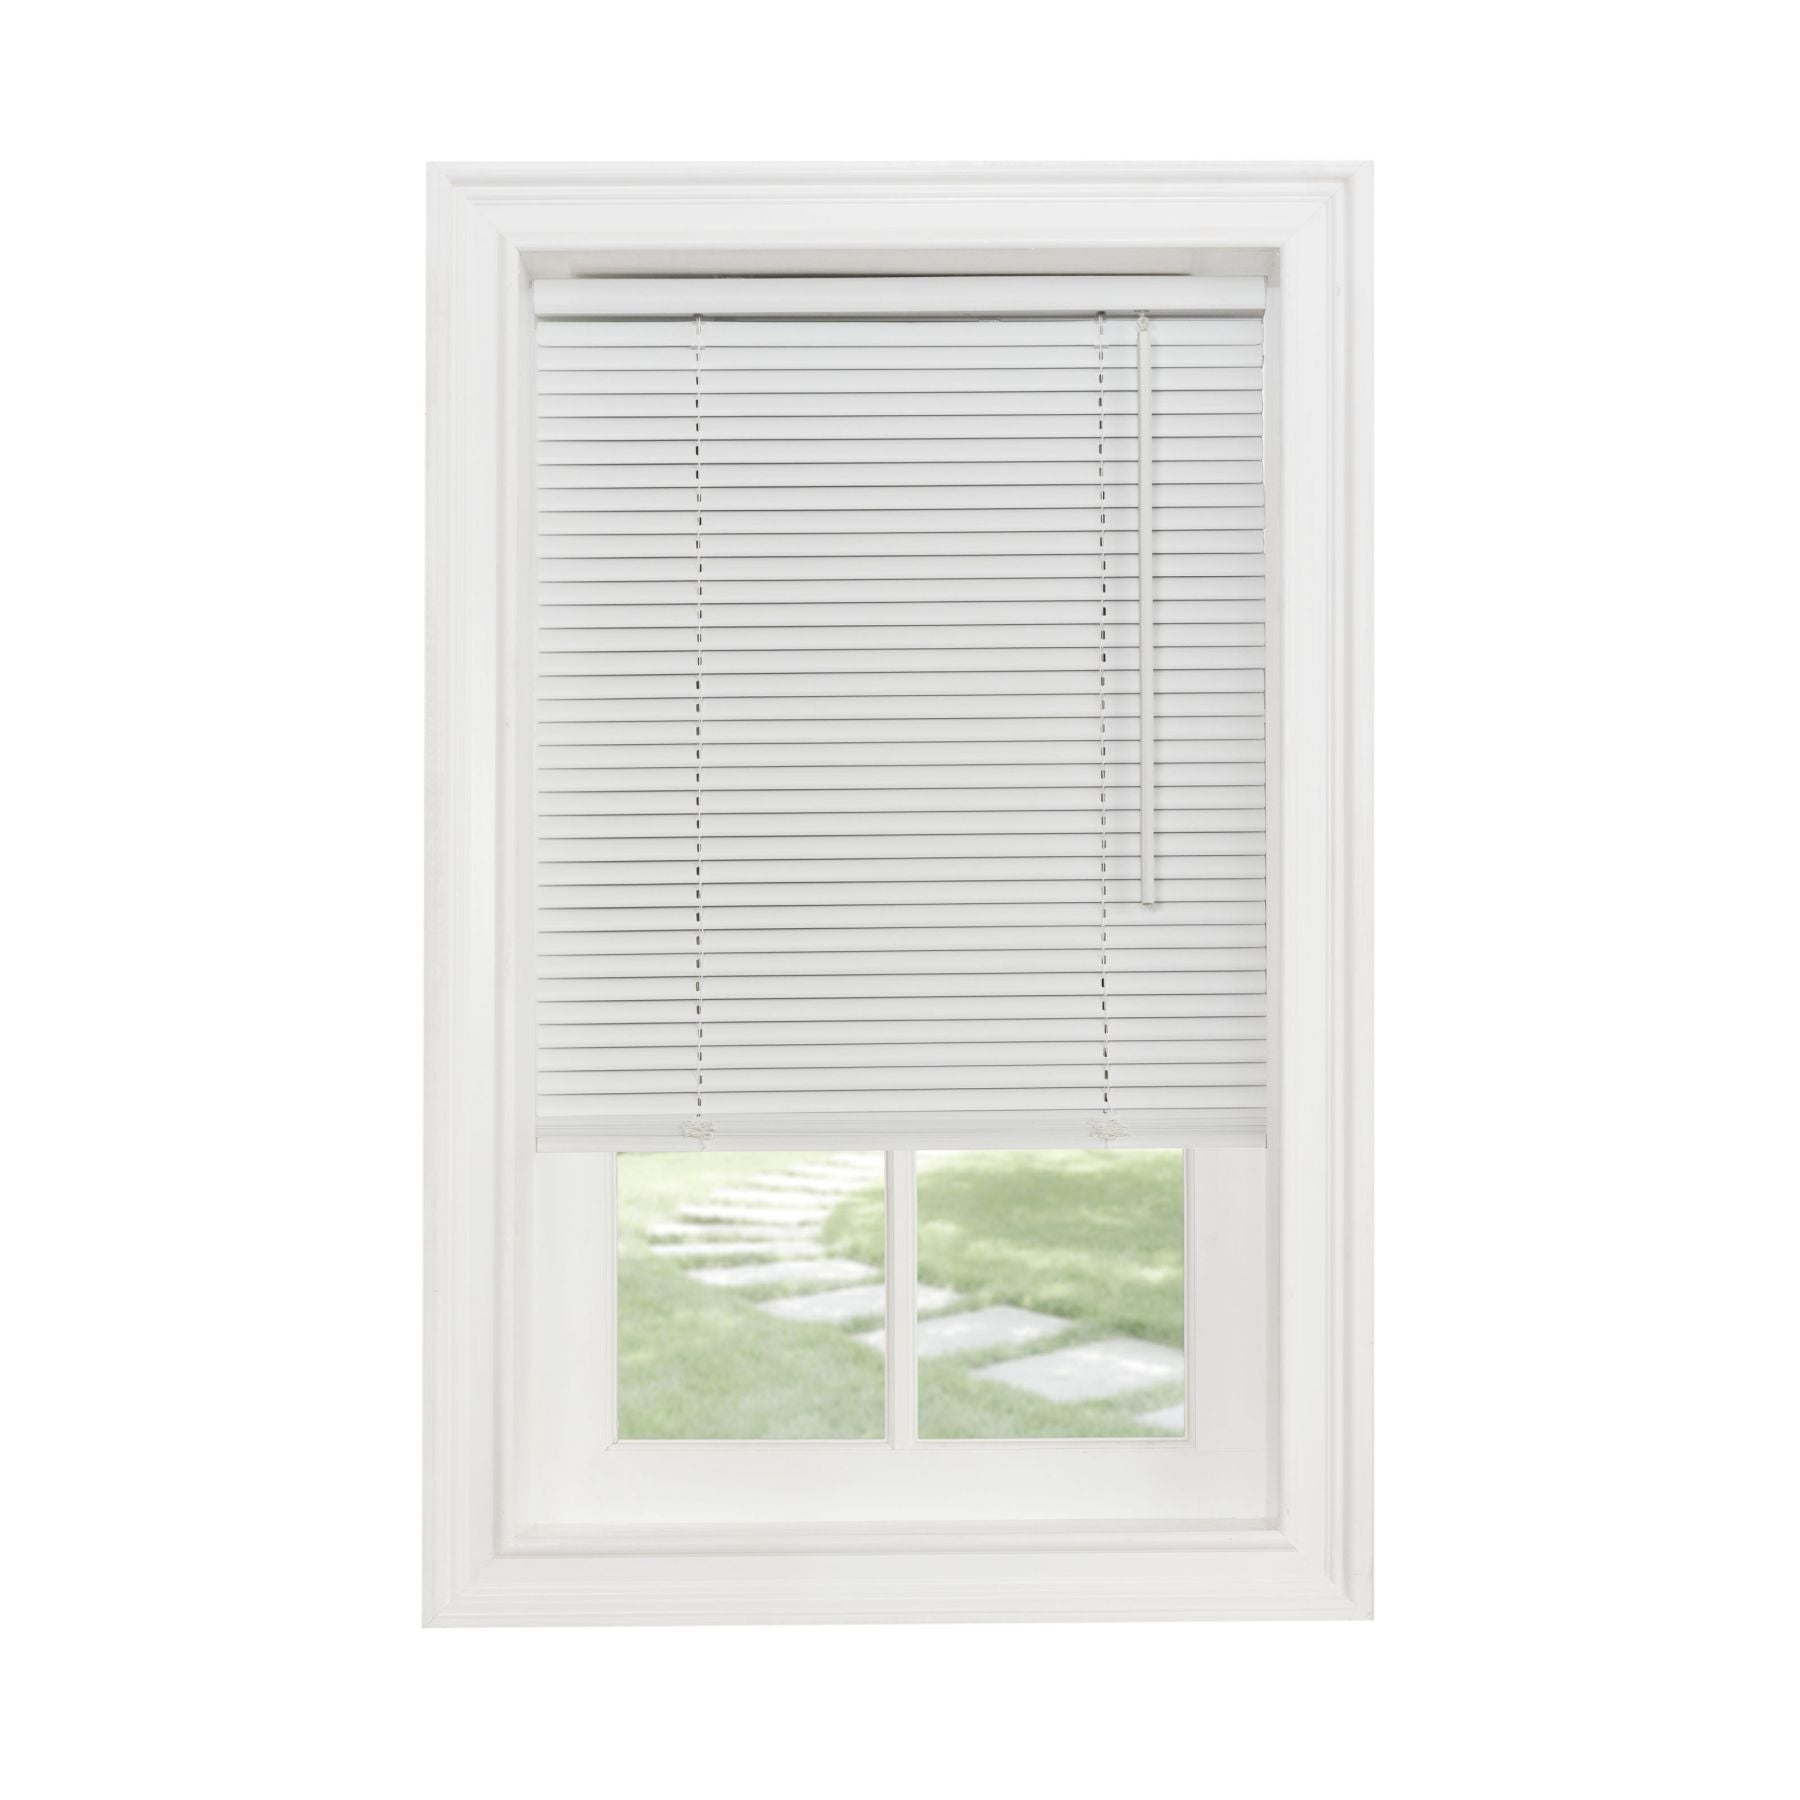 "Traditional Elegance Cordless Sunrise 1"" Light Filtering Mini Blind 29x64 - White"